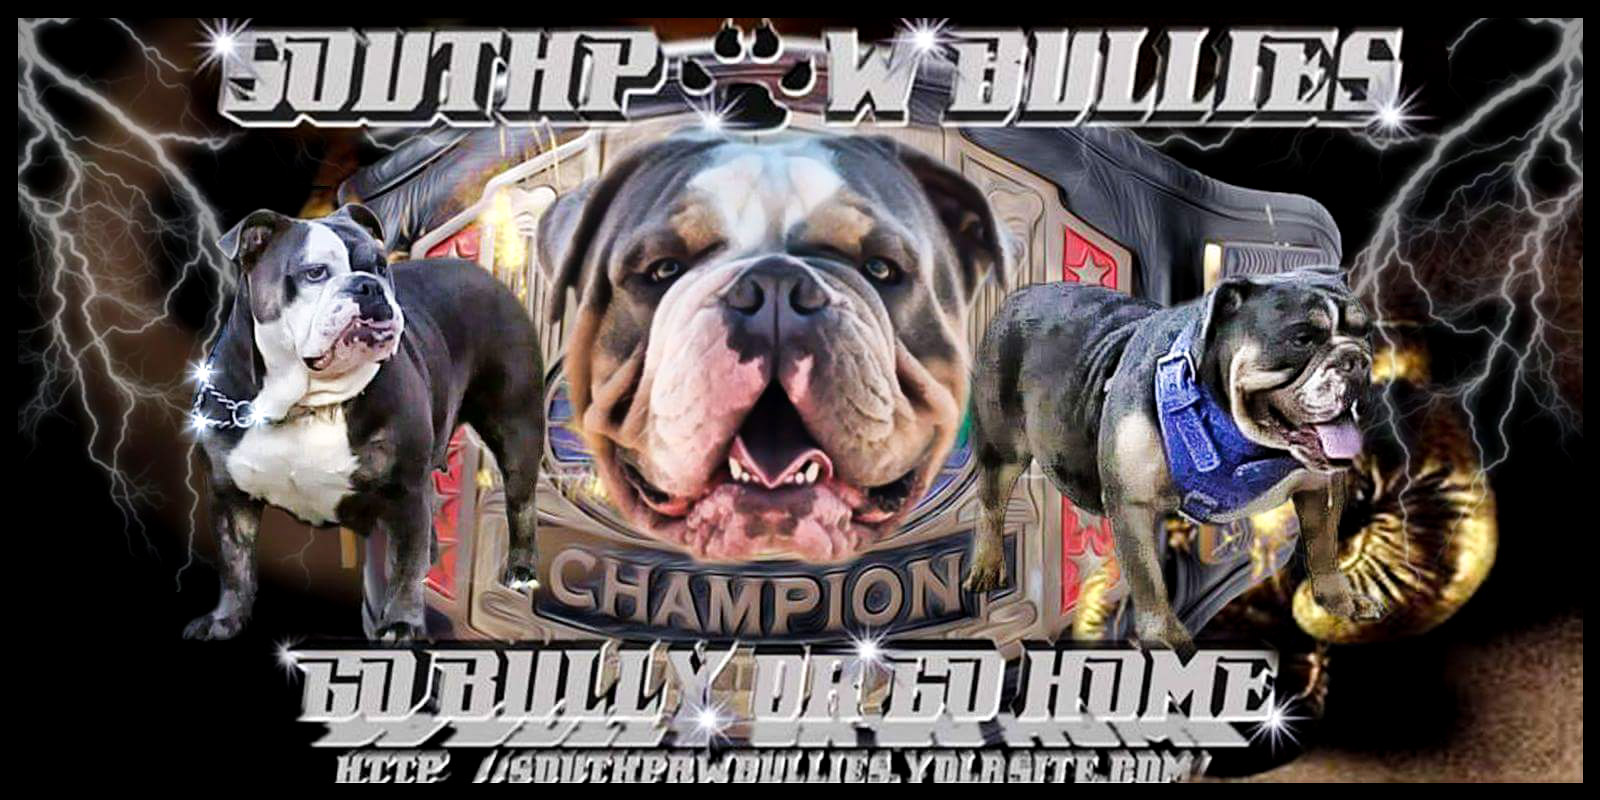 SouthPaw Bullies; Home of the Italian & Olde English Bulldogge